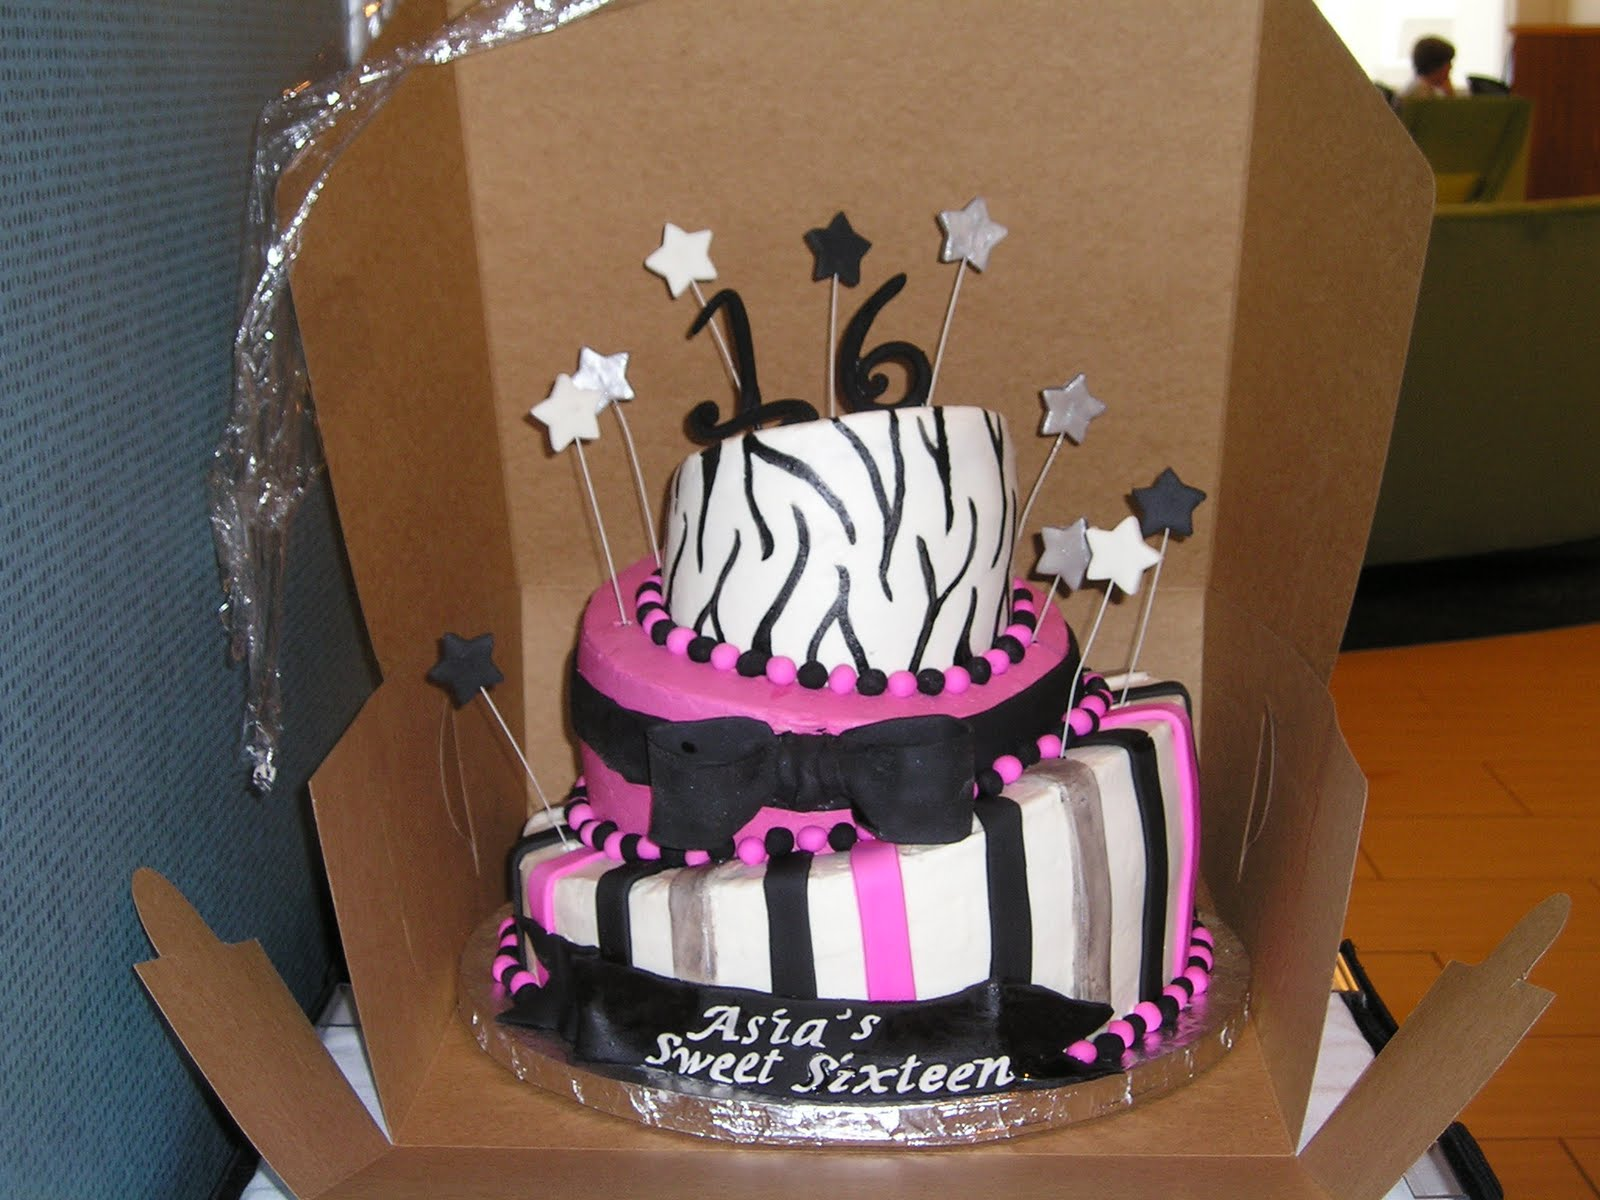 DEE Licious Cakes Sweet Sixteen Cake